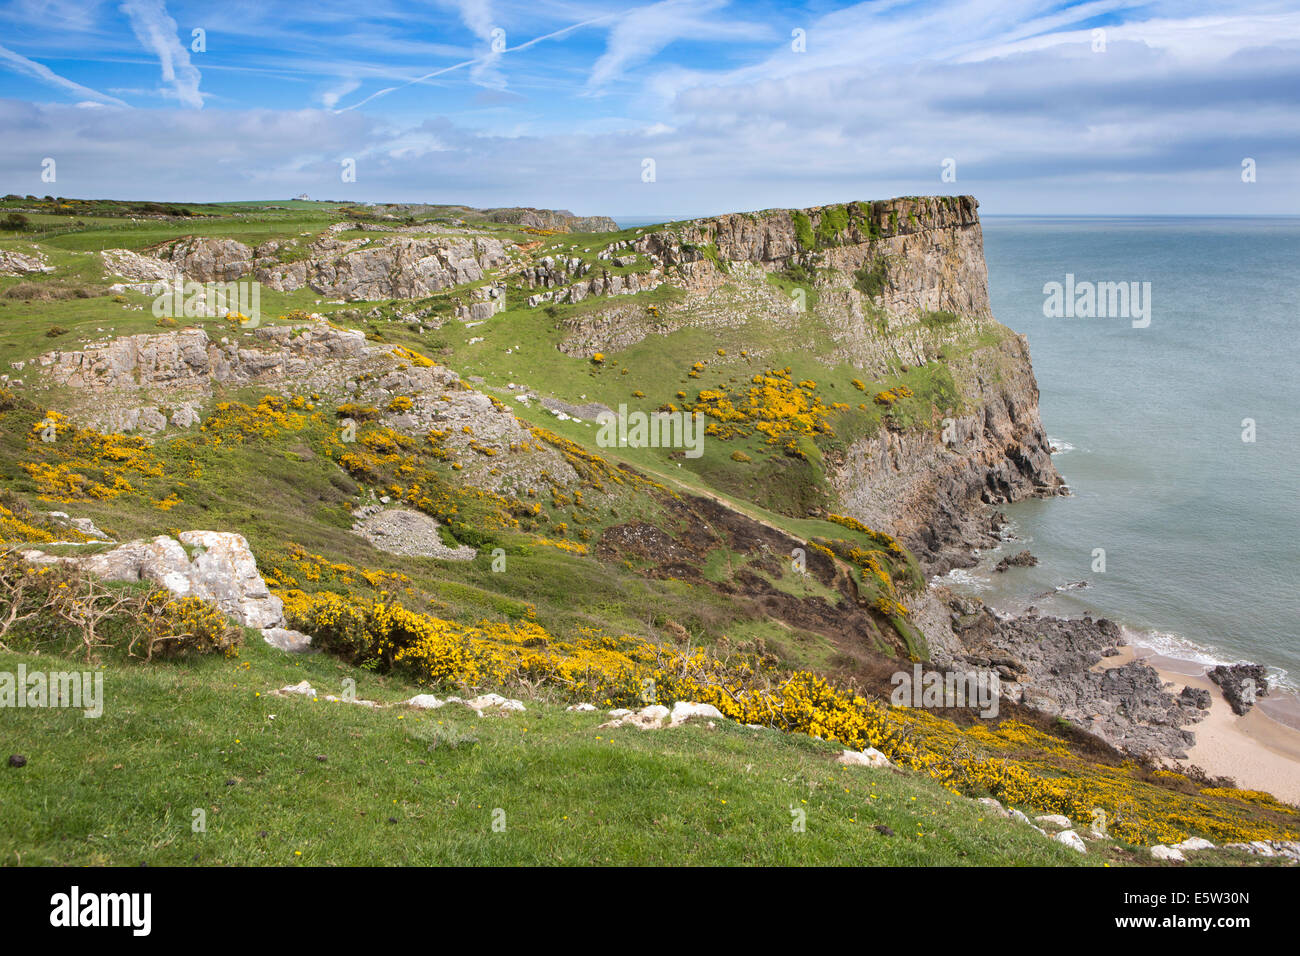 UK, Wales, Swansea, Gower, Rhossili, Swansea Bay Coast at Fall Bay - Stock Image